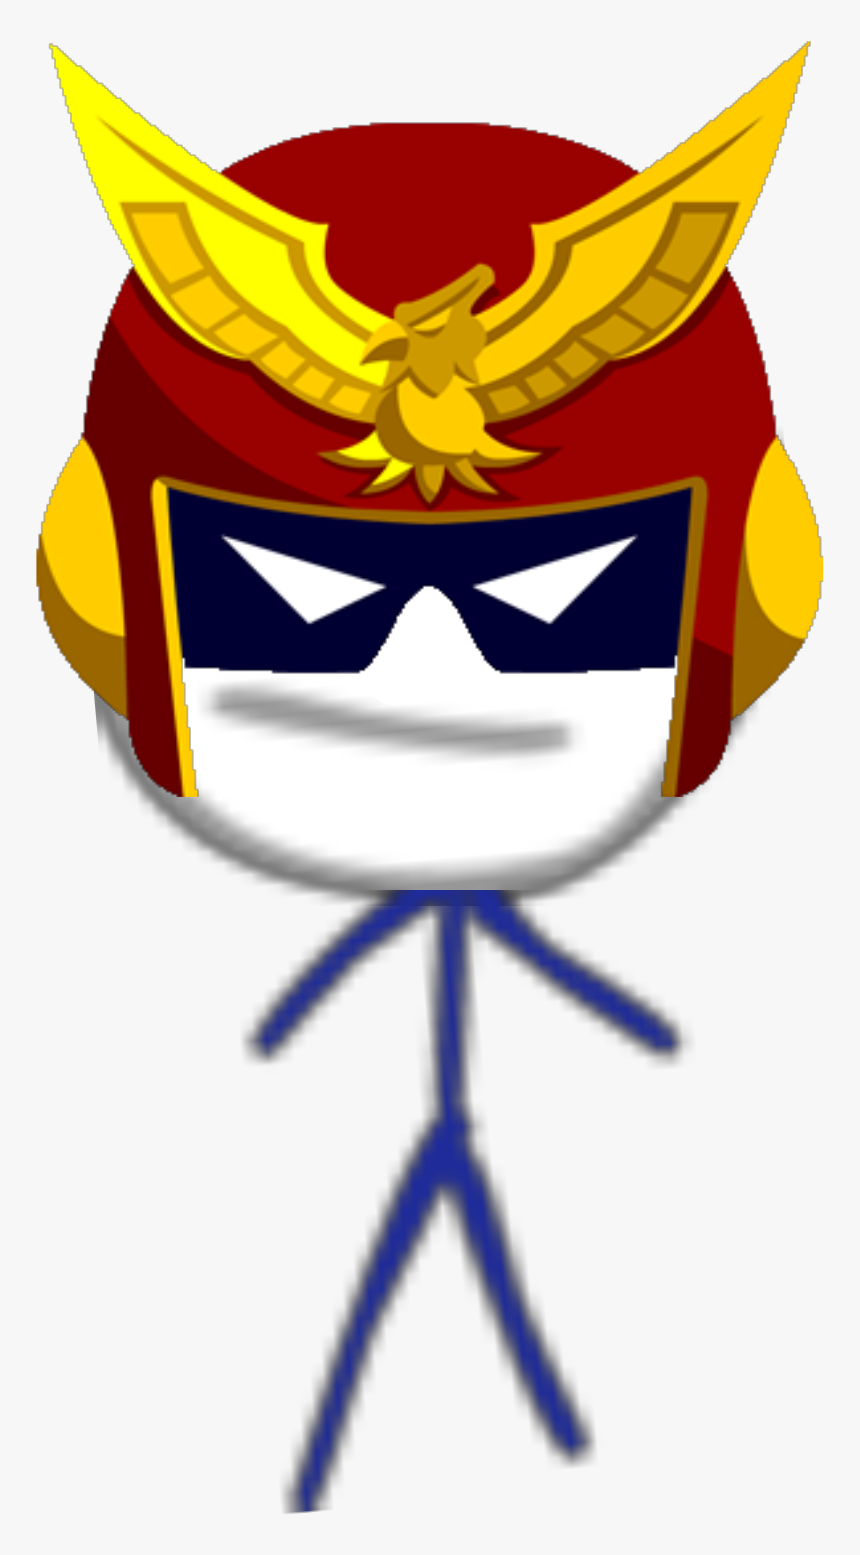 The Man Himself - Captain Falcon Fire Emblem, HD Png Download, Free Download